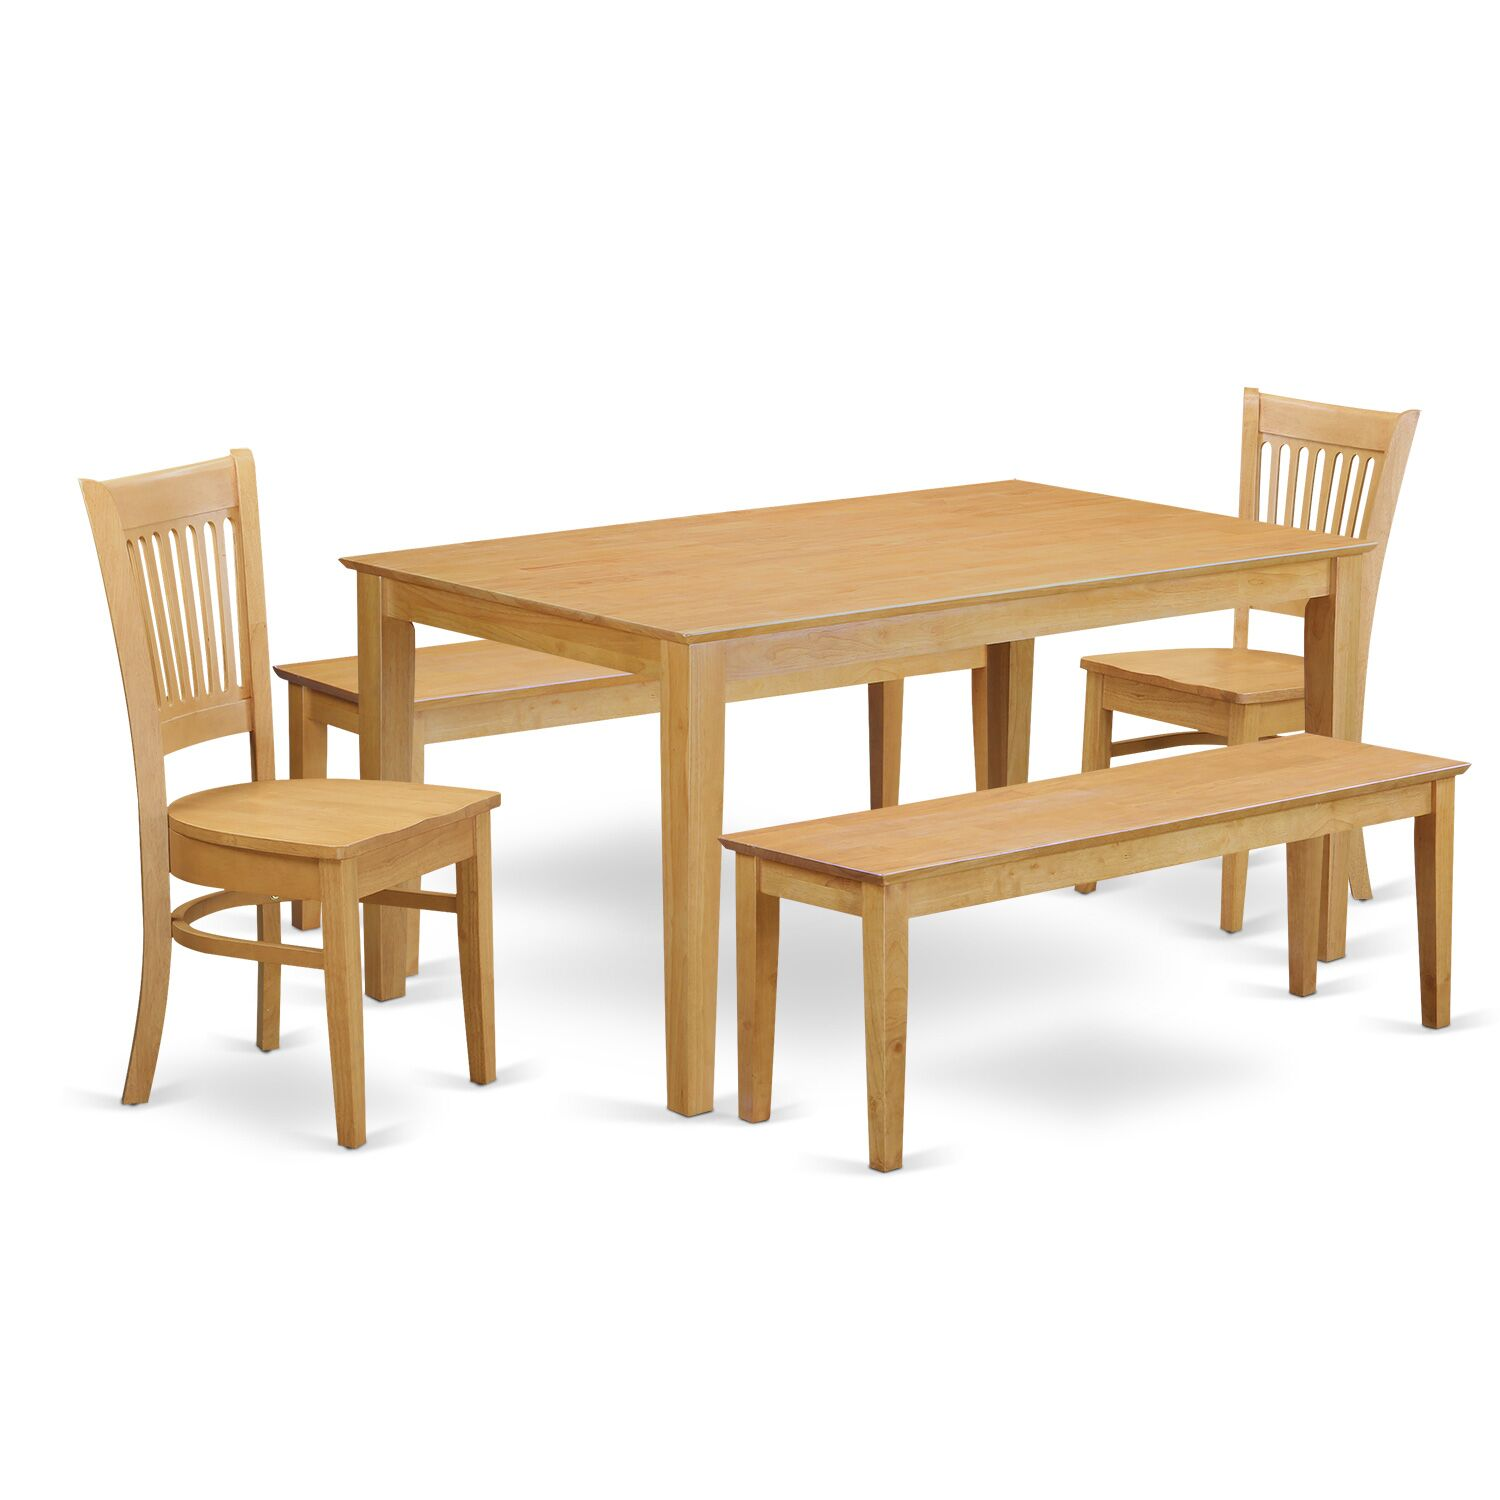 Smyrna 5 Piece Dining Set Fabric: Wood